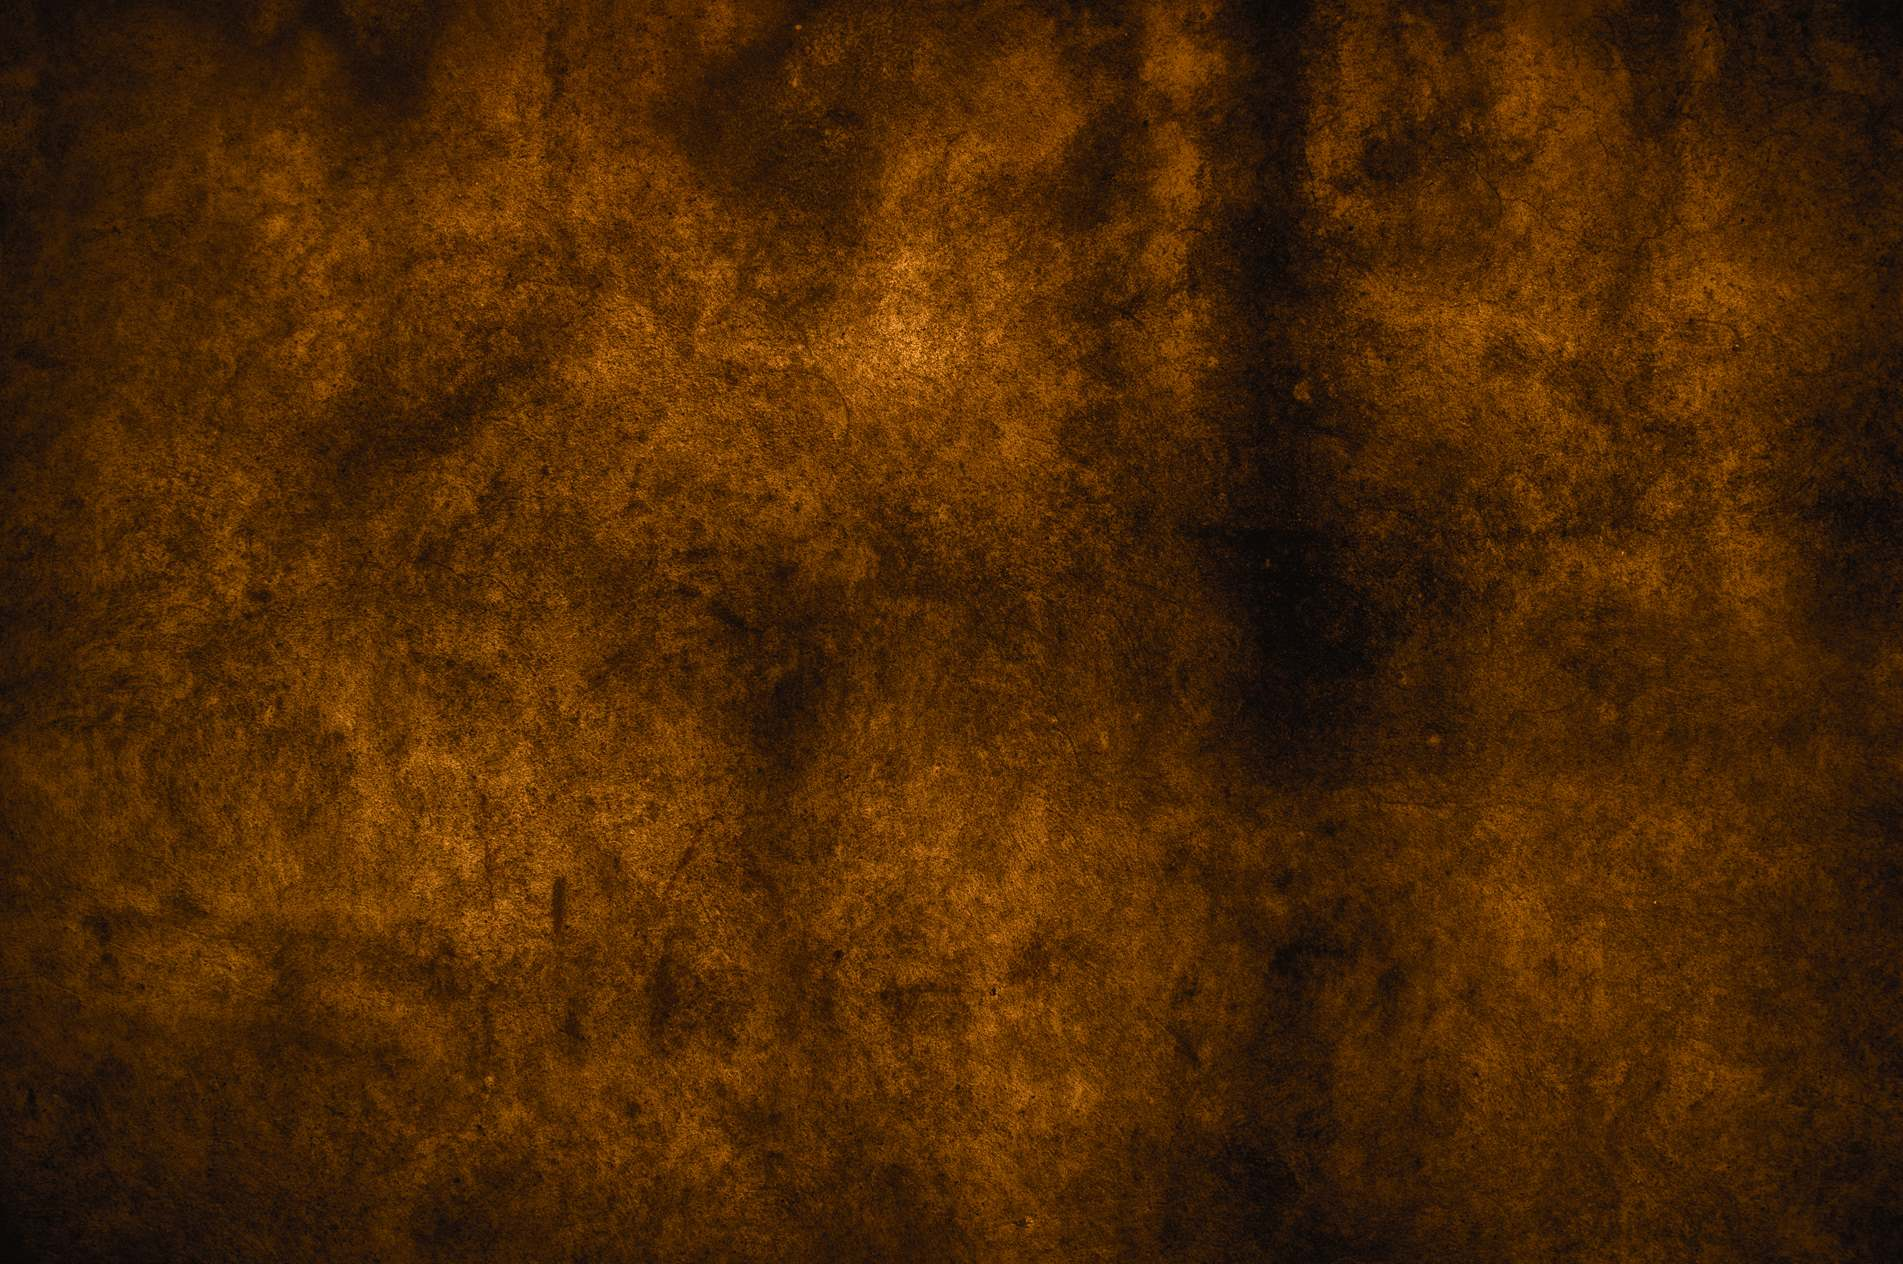 Brown Textured Concrete : Dark brown grungy wall texture background photohdx